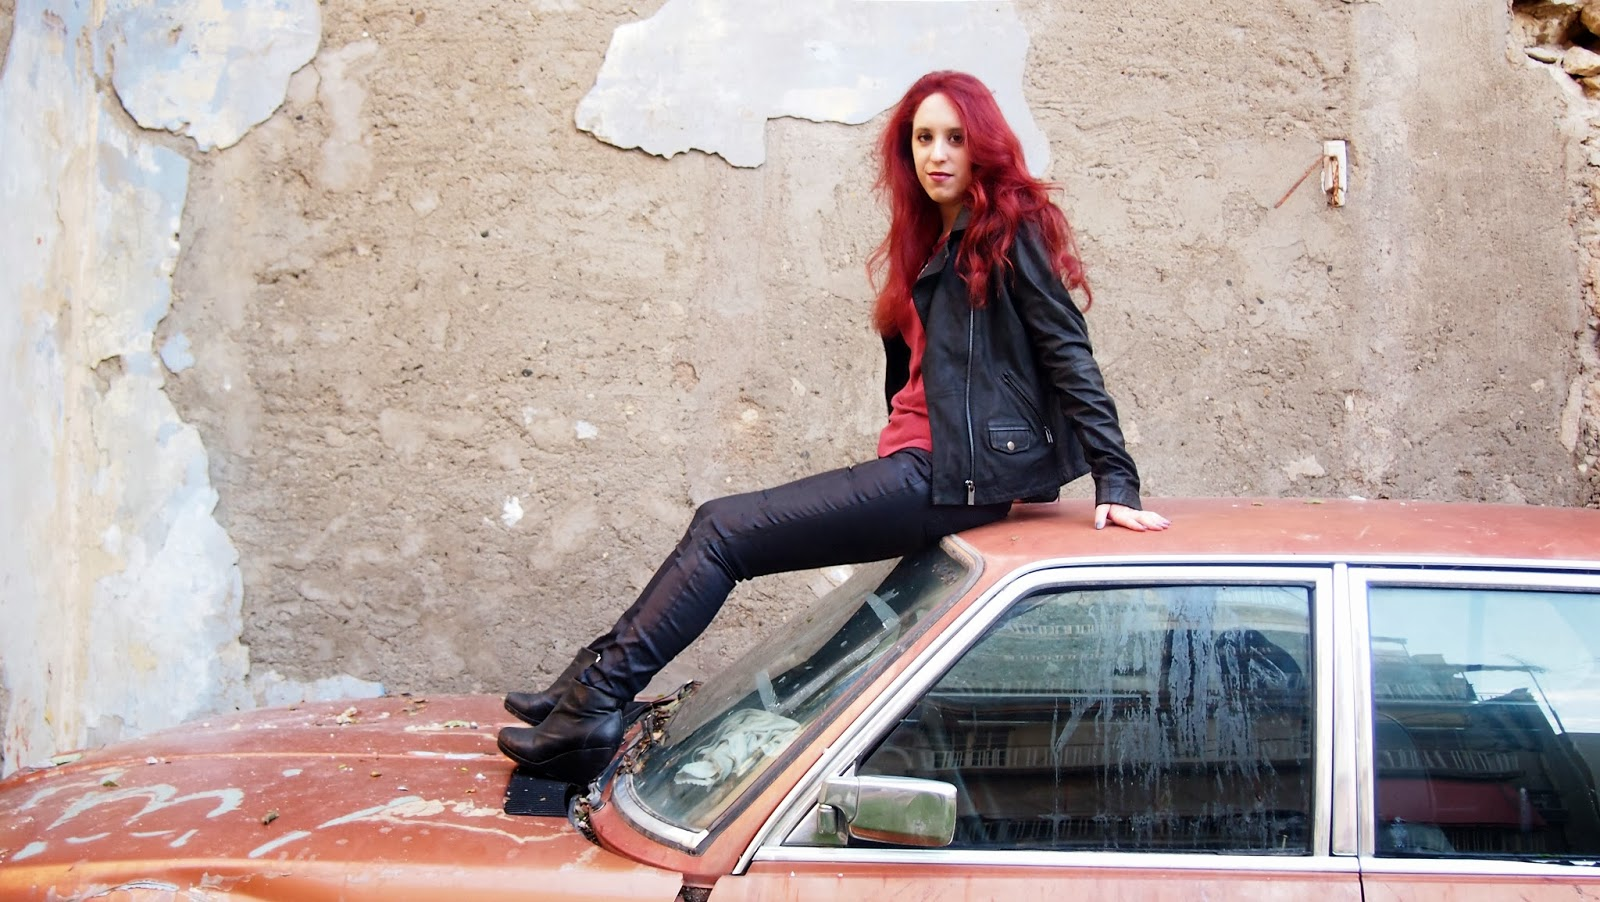 Anna Keni,redhead, spotlights on the redhead,fashion,model,blogger, Act&React, Act and React, wrangler, dyrberg/kern, dyrberg kern, lee, official, going to hell, pretty reckless, rock, old car, attitude